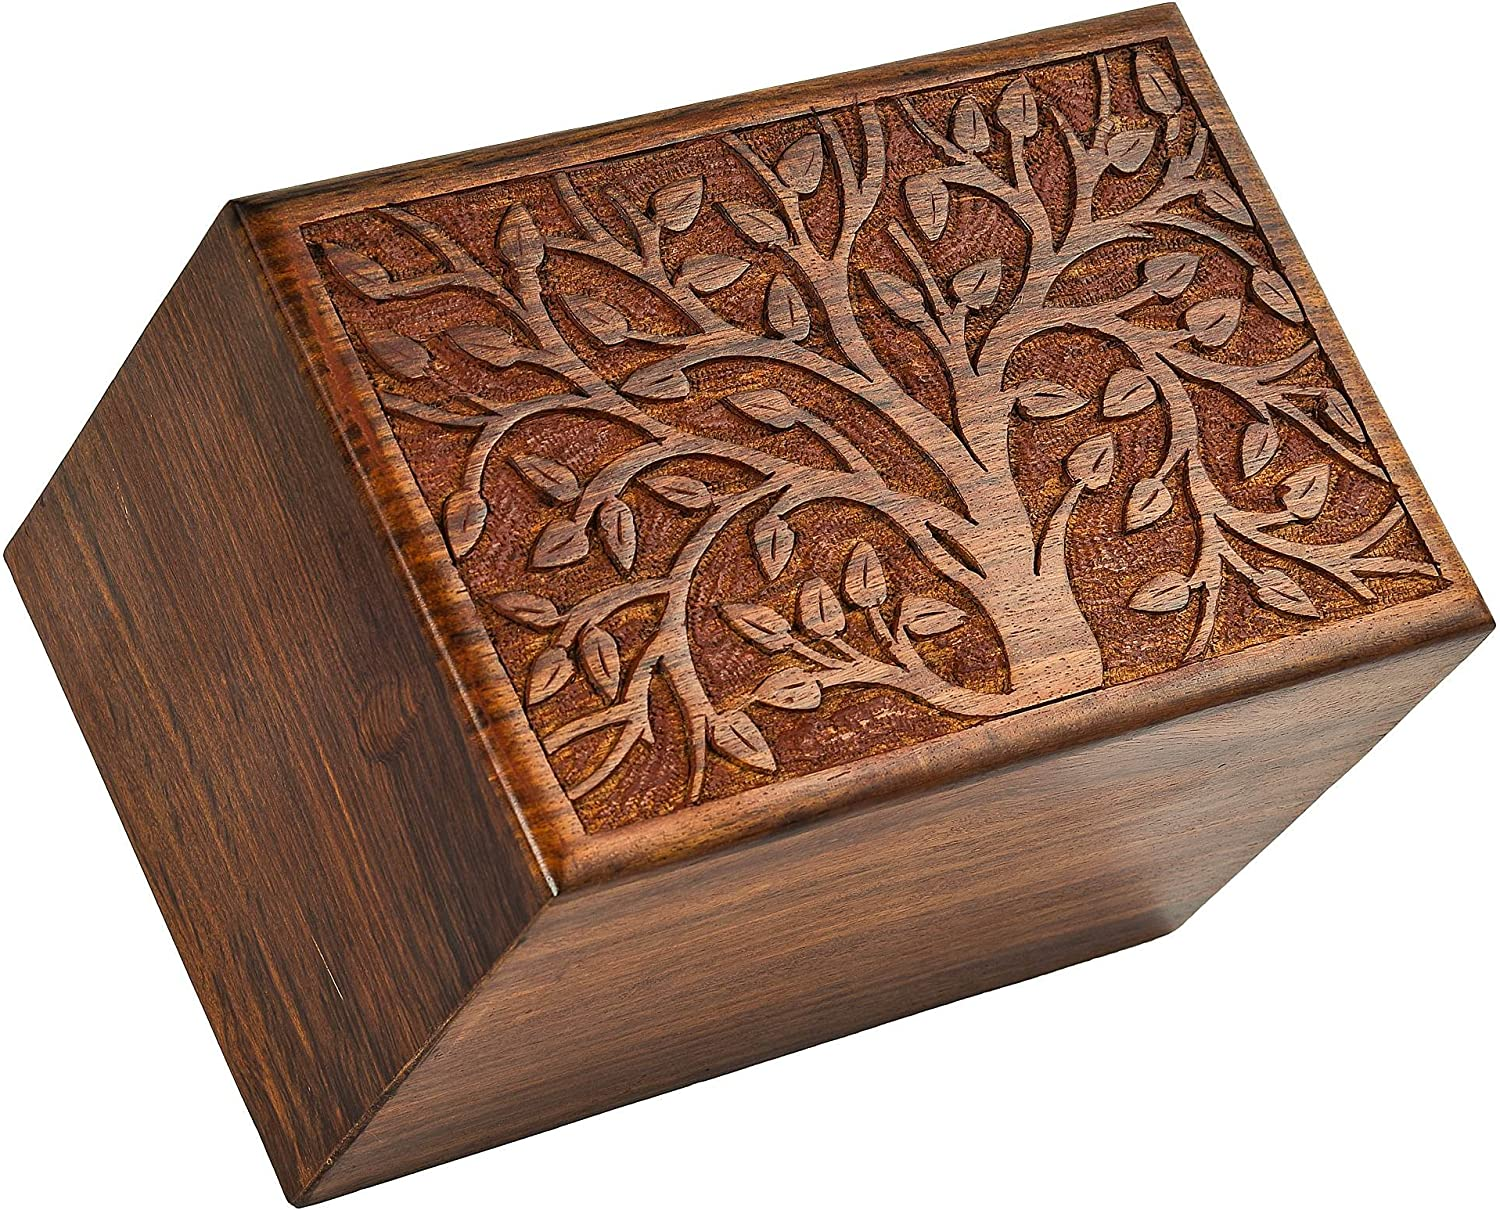 Fine Craft India Tree Printed Beautifully Handmade & Handcrafted Tree of Life Engrcaving Wooden Urns for Human Ashes Size  9 x 6 x 6 Inh (LxBxH) 1060 Gram -Weight